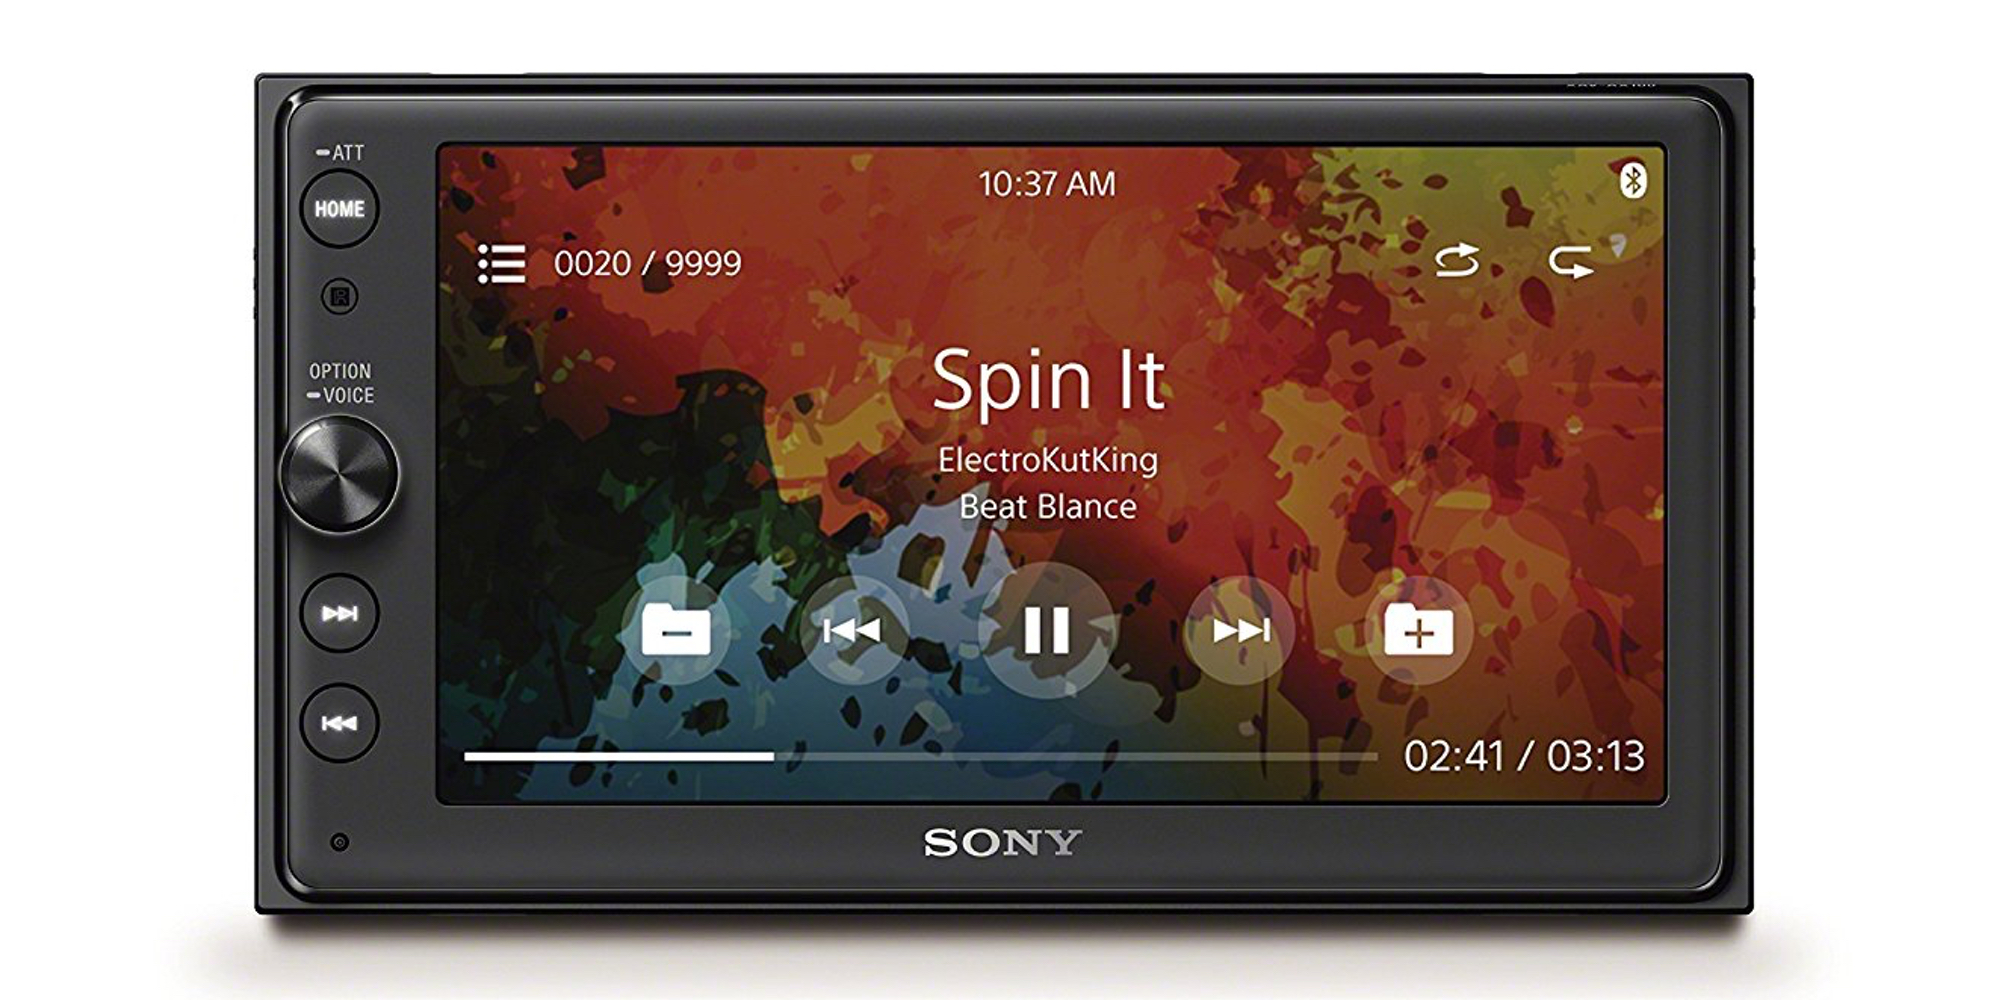 9to5Toys Letzter Anruf: Sony Android Auto Receiver $ 290, Anker-Ausverkauf ab $ 7, TP-Link Color Smart-Birne $ 23, mehr